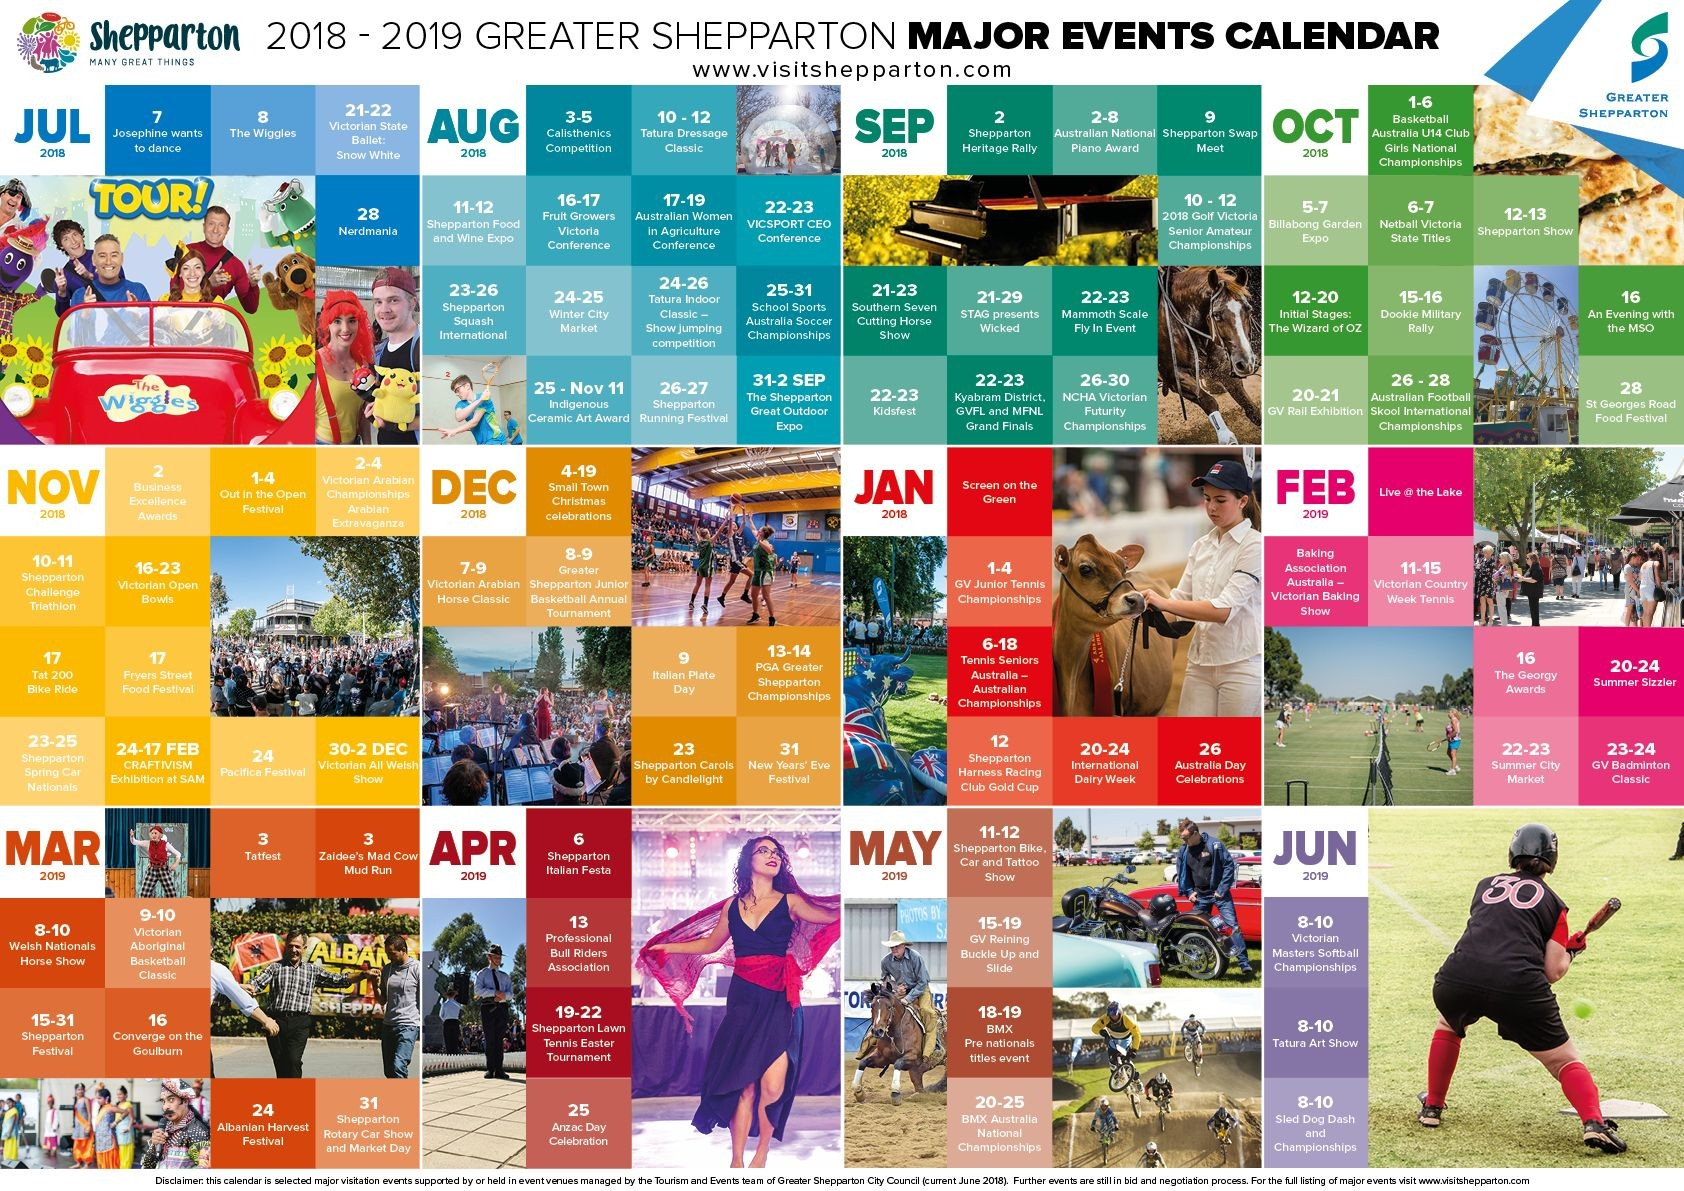 the major events calendar provides a great balance of major events across a full 12 months and a broad cross section of categories including arts and